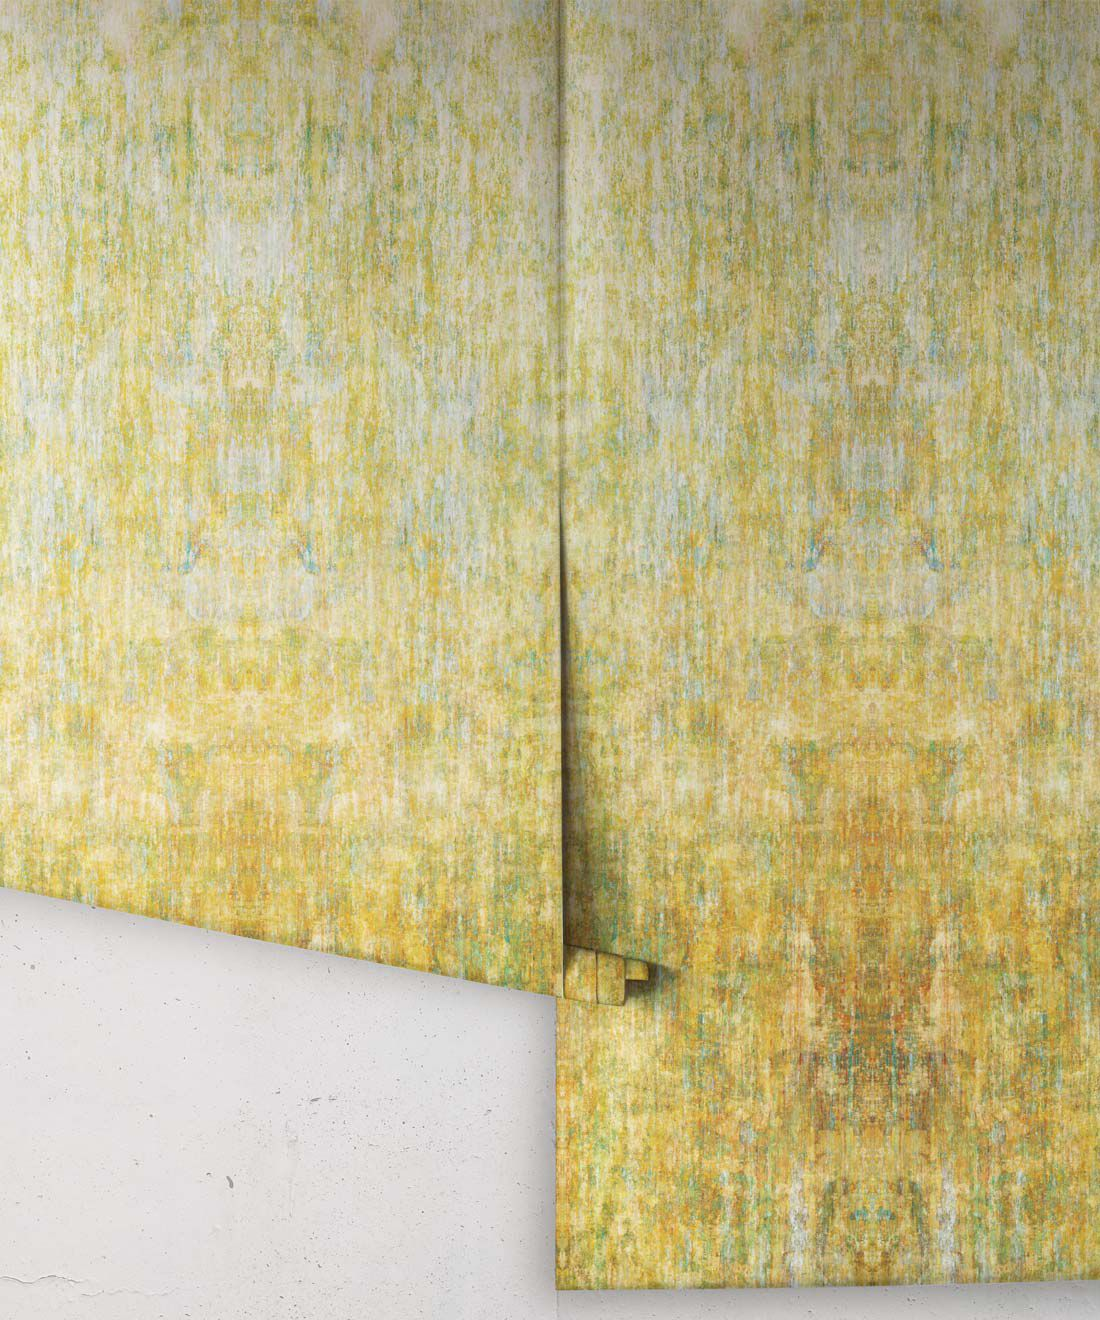 Patina Wallpaper by Simcox • Color Gold • Abstract Wallpaper • rolls